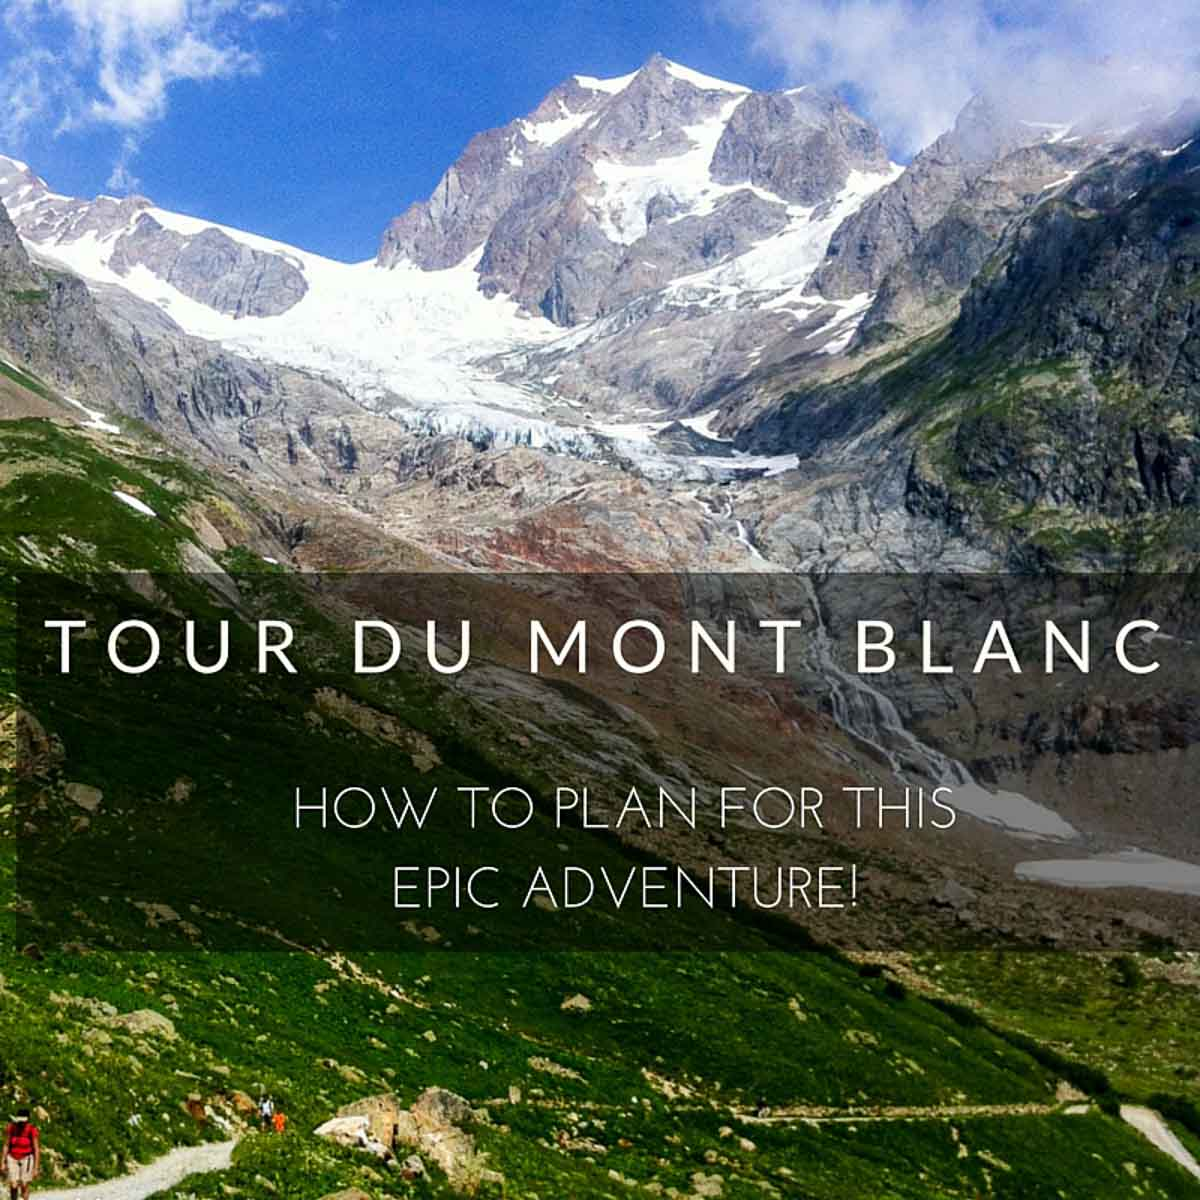 Tour du Mont Blanc is one of the best hikes in Europe that goes through France, Italy and Switzerland.